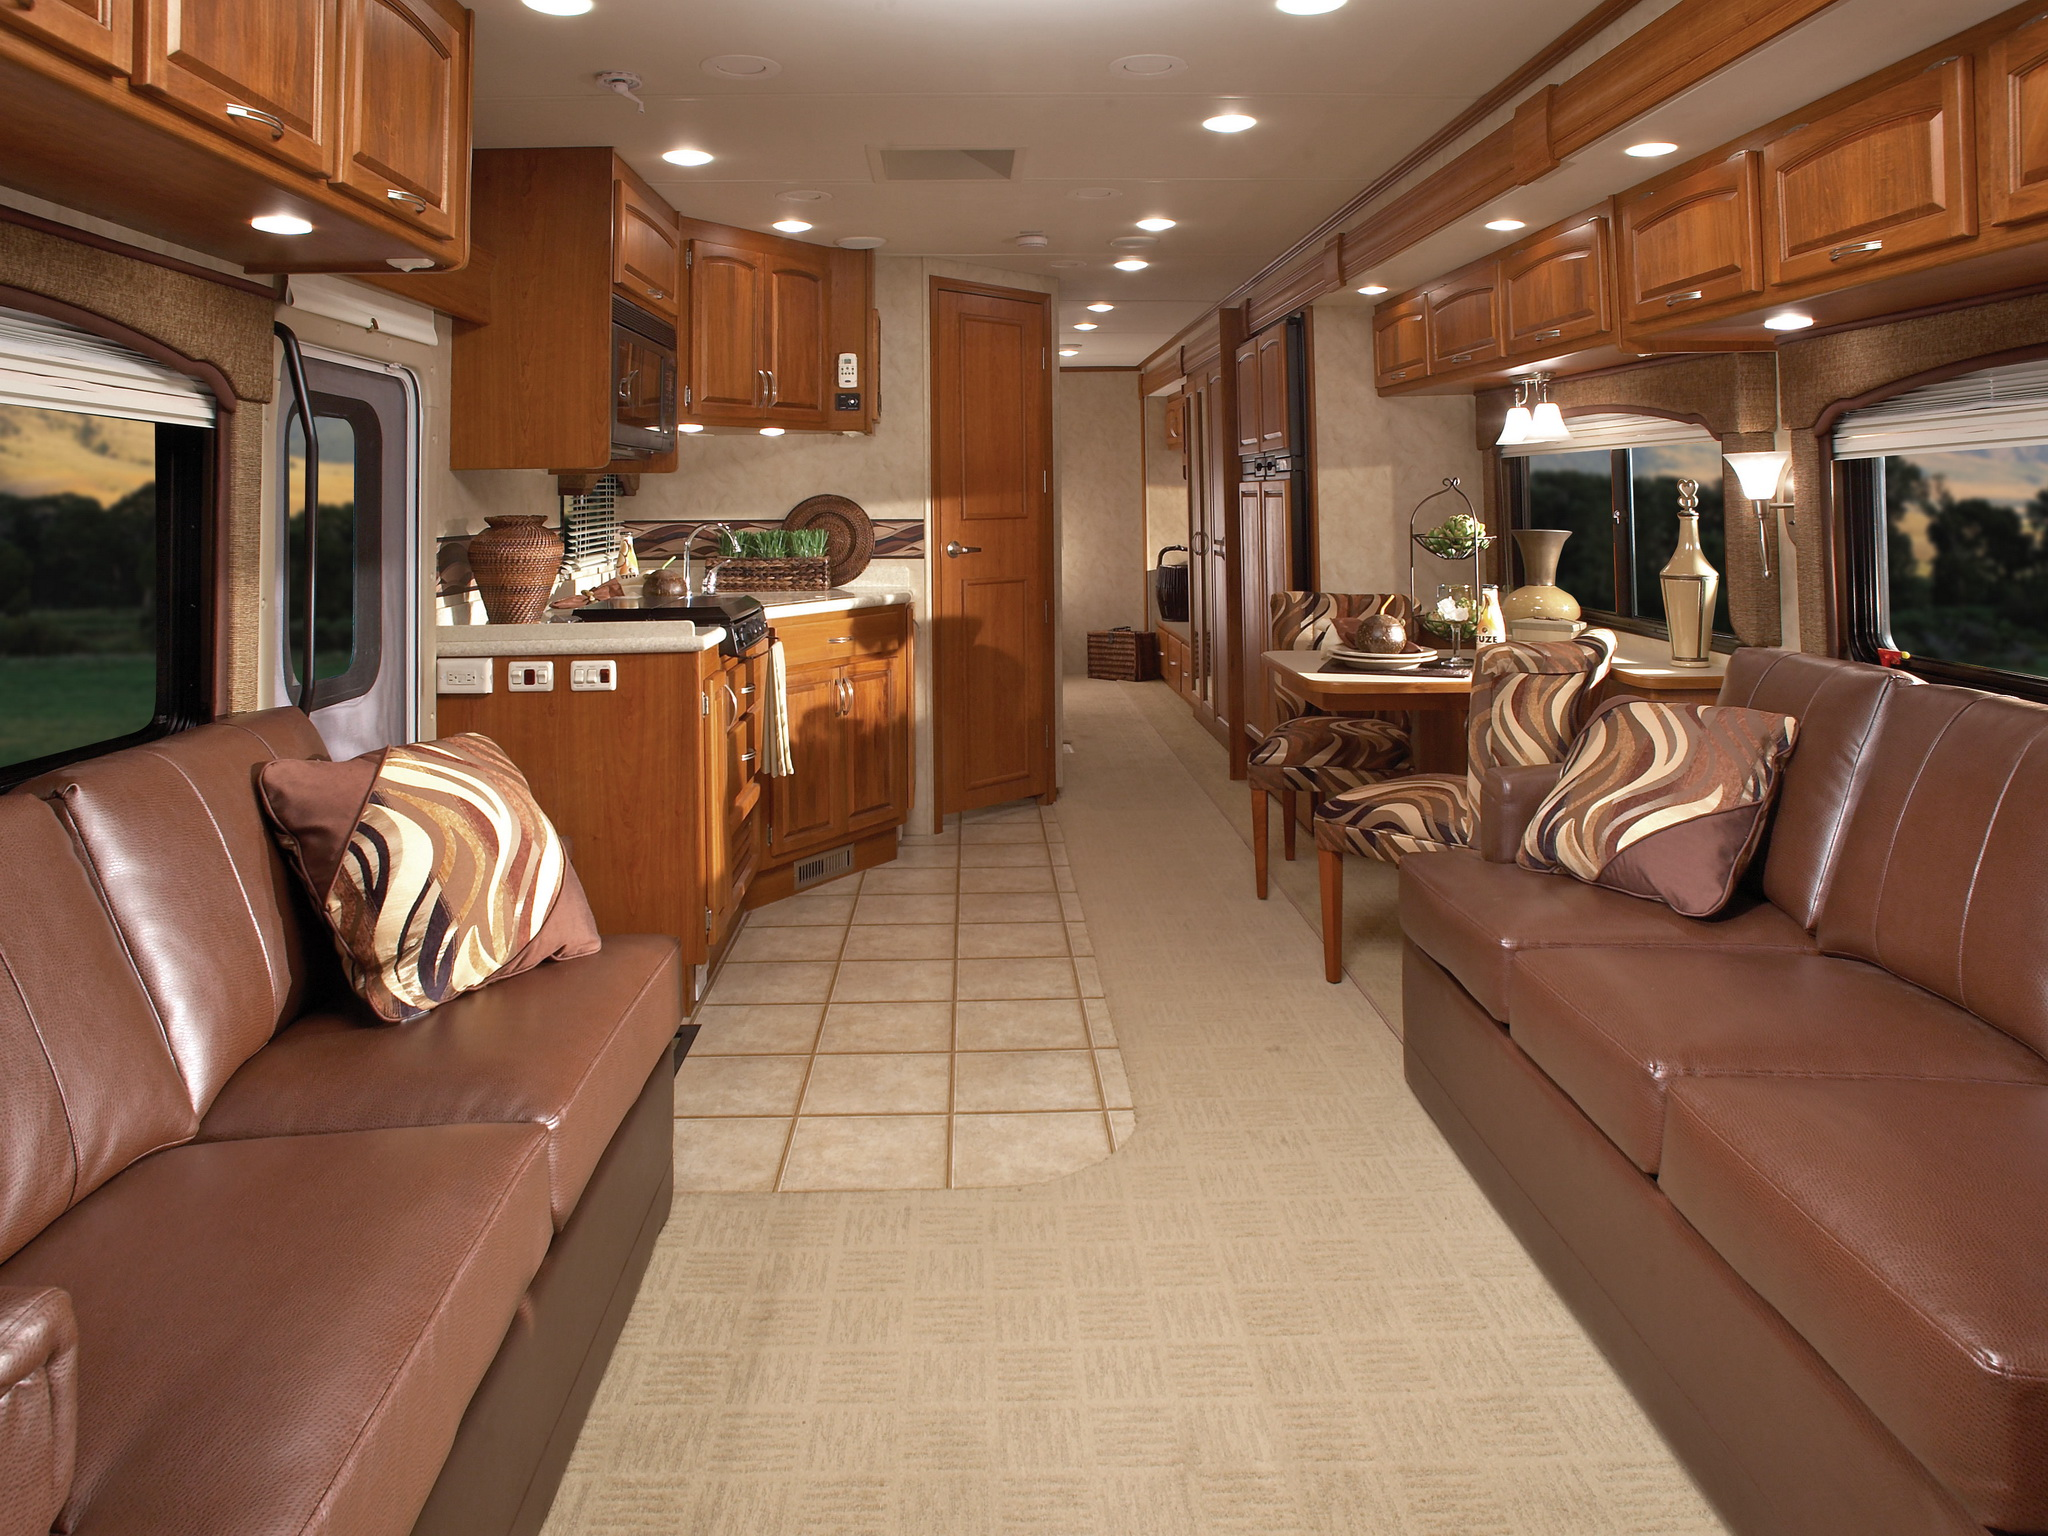 Fantastic used rvs 1973 airstream argosy motorhome for sale for sale by owner